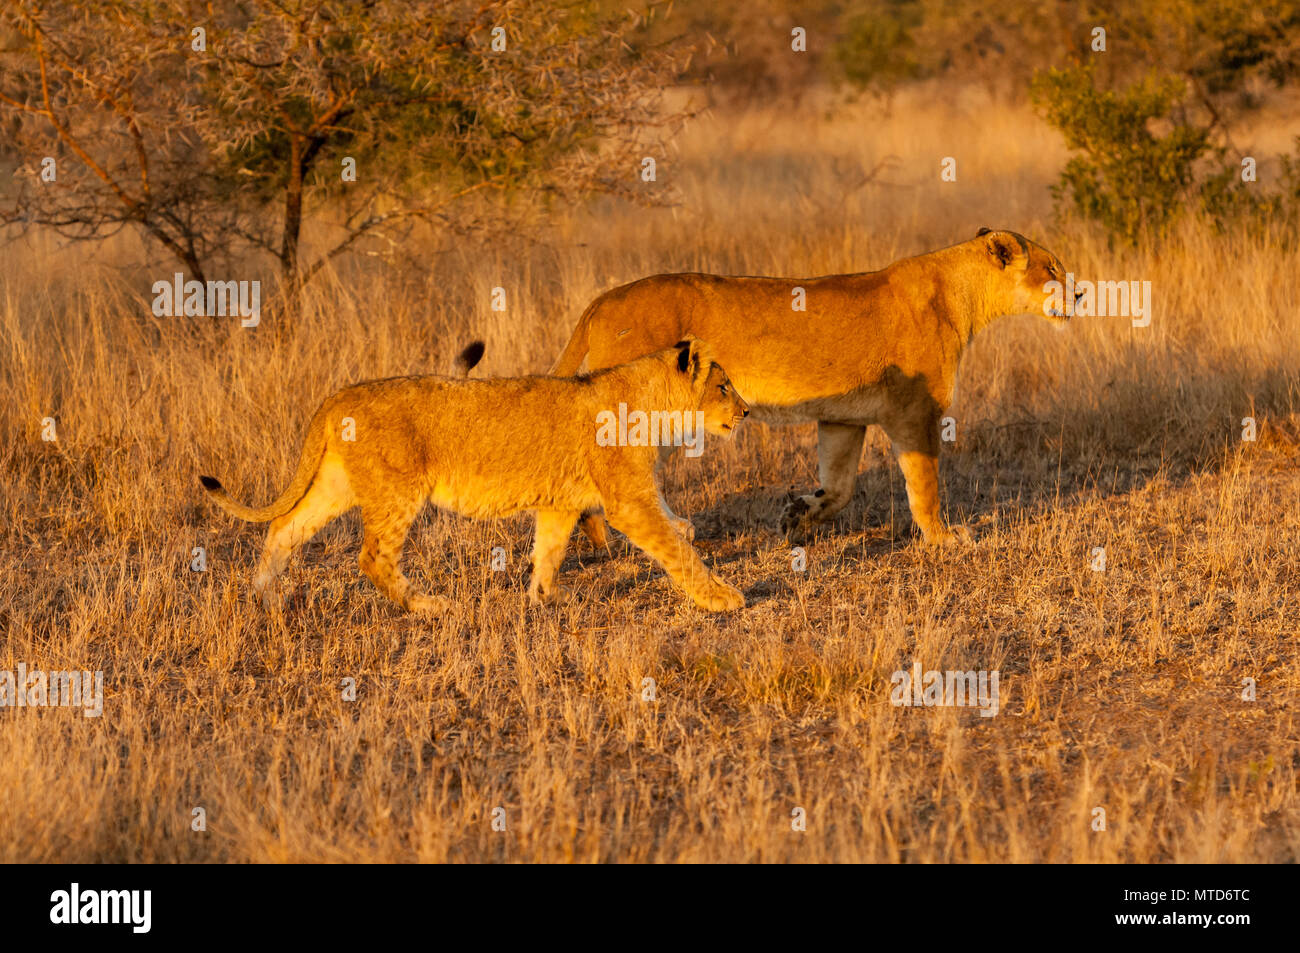 Lioness with cub on an early morning hunt in Sabi Sand Game Reserve - Stock Image